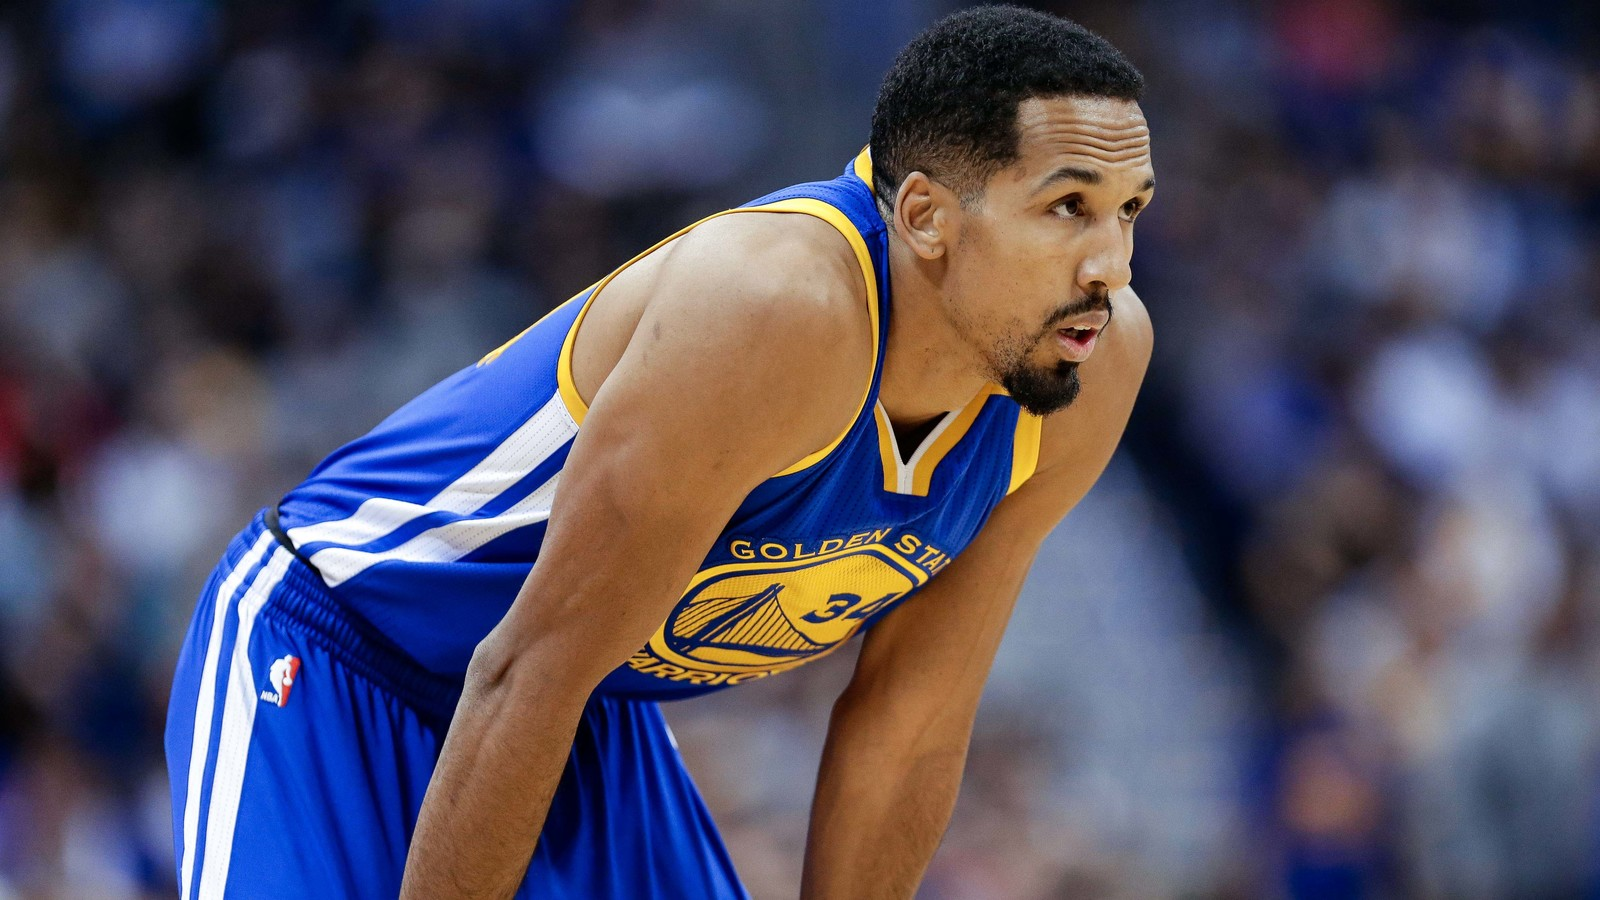 shaun livingston athlete wallpaper 63839